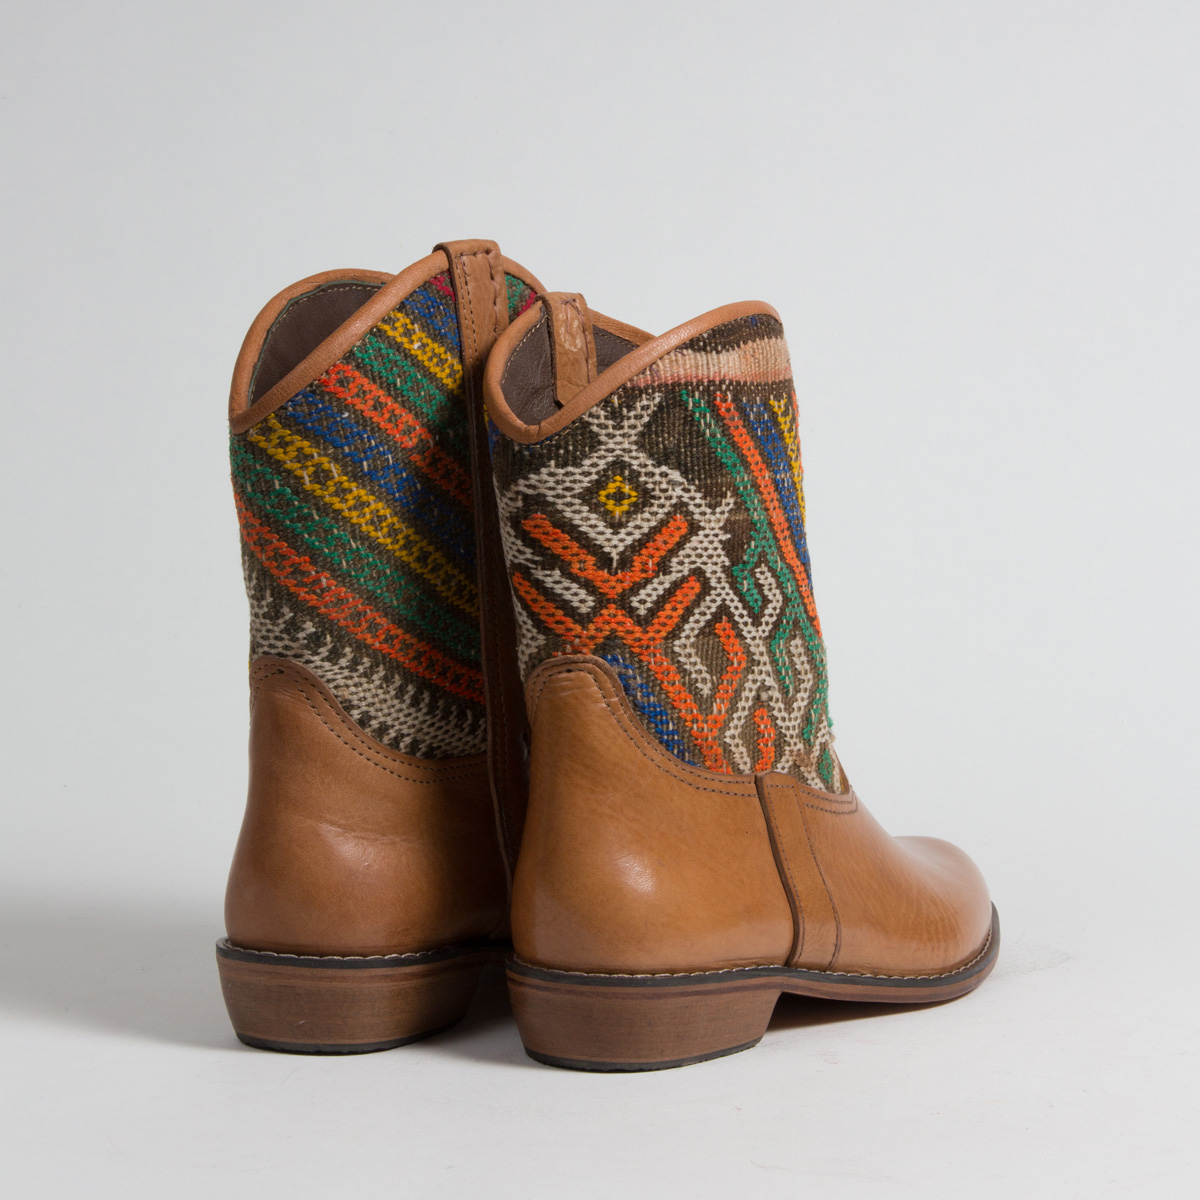 Bottines Kilim cuir mababouche artisanales (Réf. P11-41)